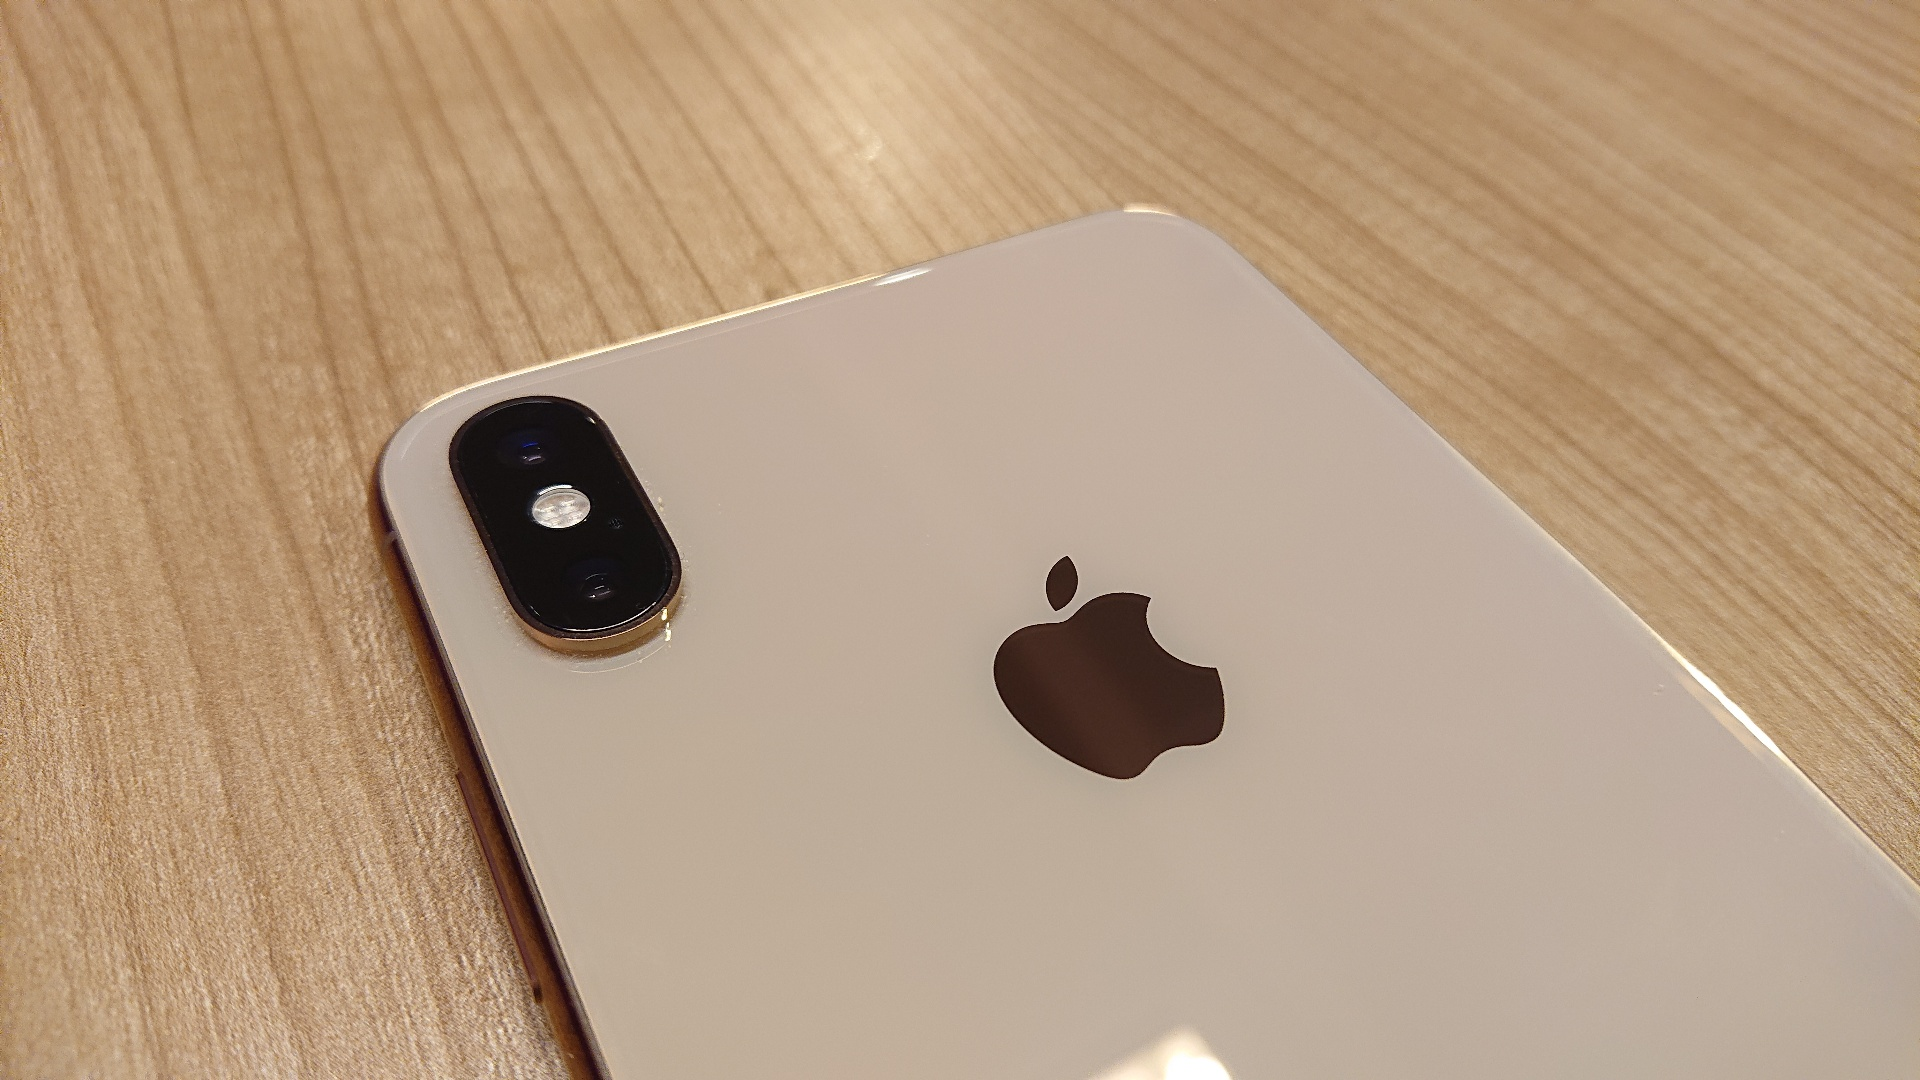 Apple iPhone XS Max review looking at the rear facing camera